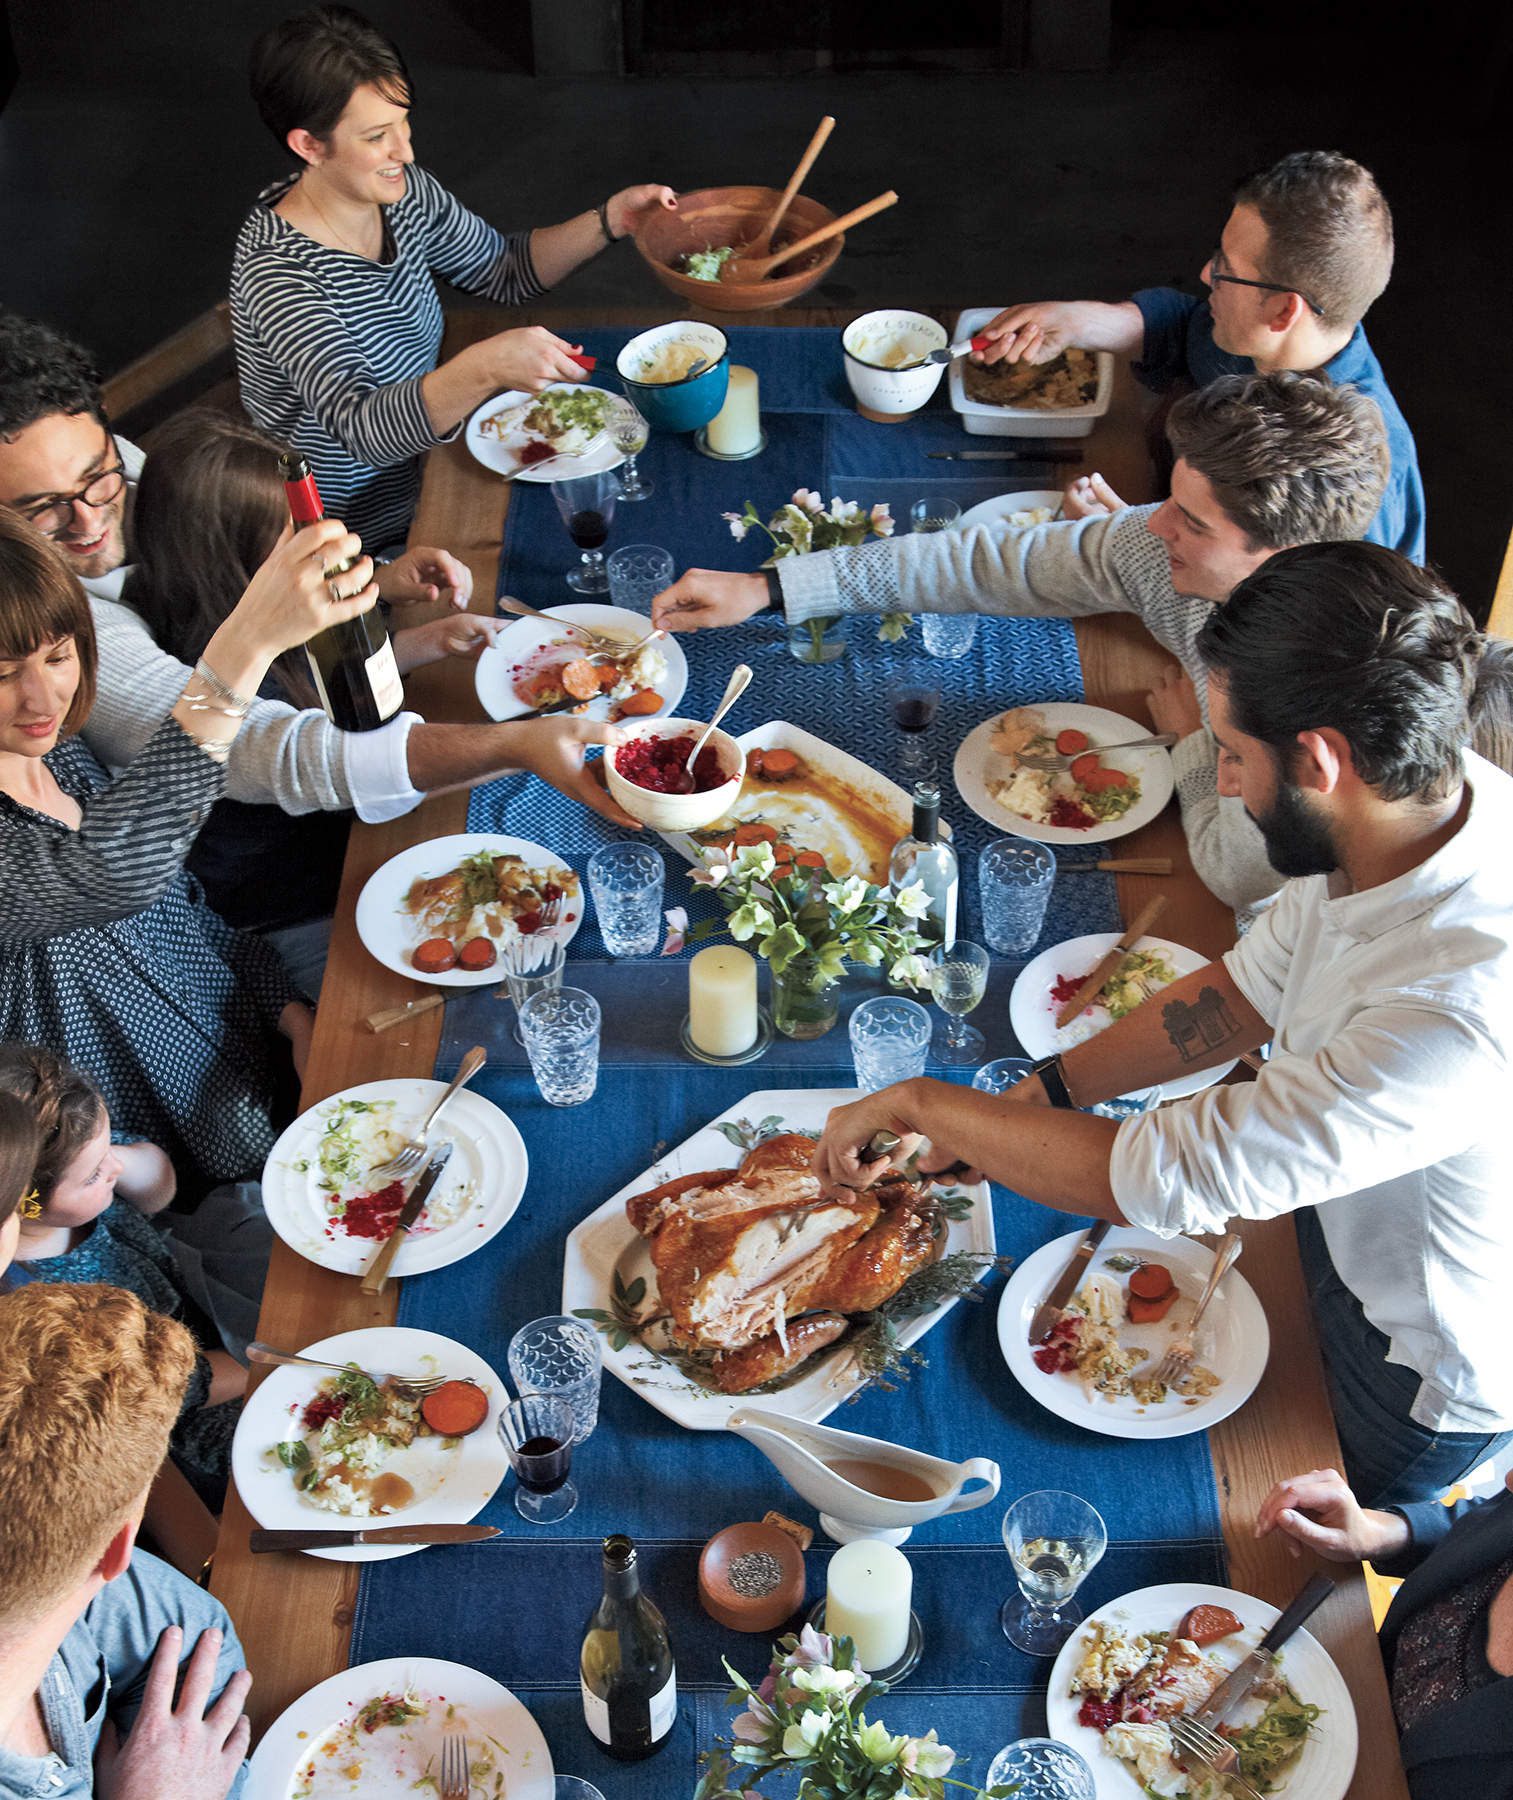 What Is Friendsgiving? 3 Facts You Didn't Know About the Tradition